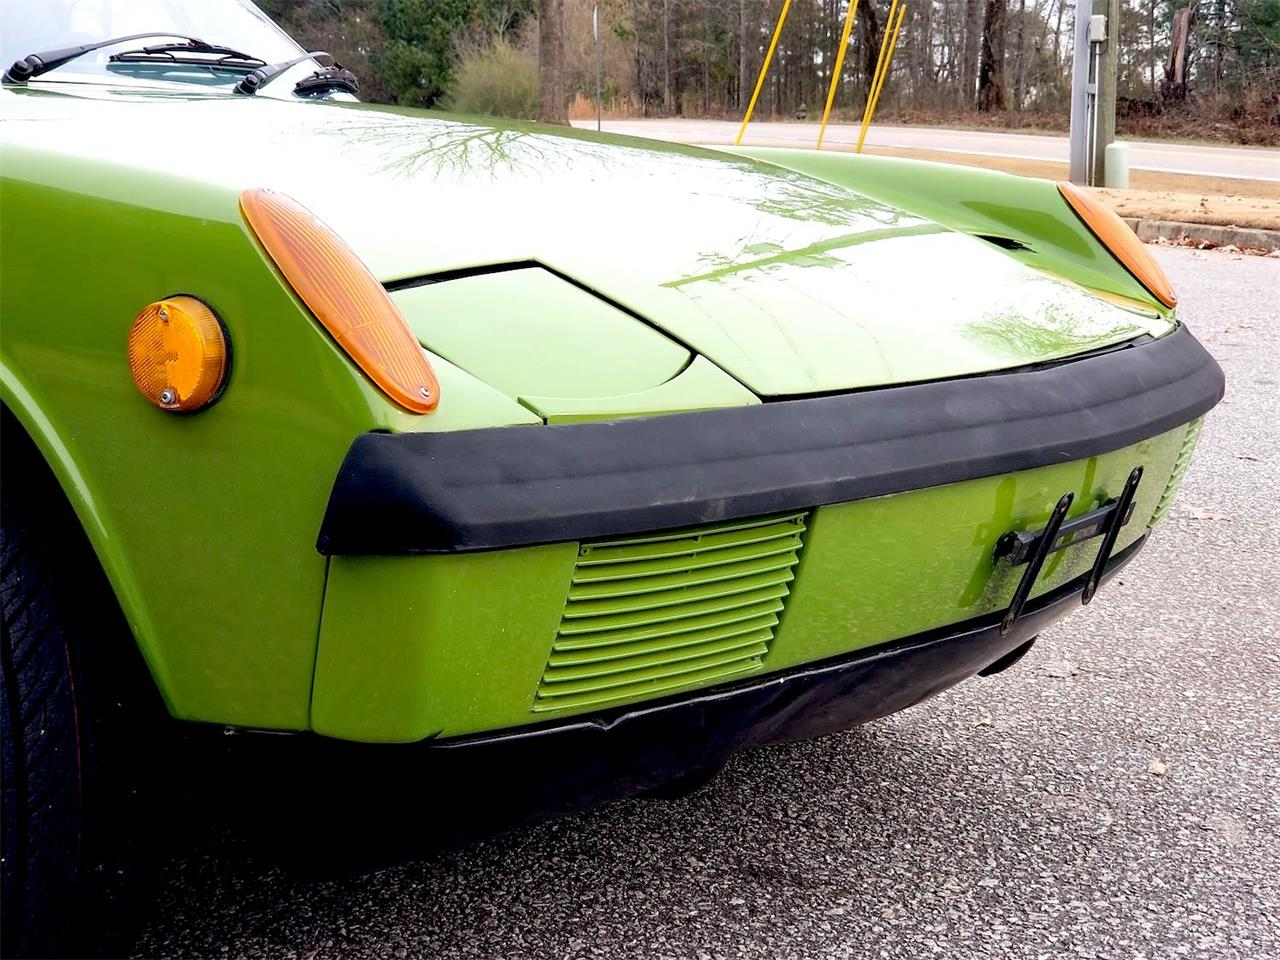 Large Picture of Classic 1971 Porsche 914 located in Oakwood Georgia - $17,900.00 - P40G